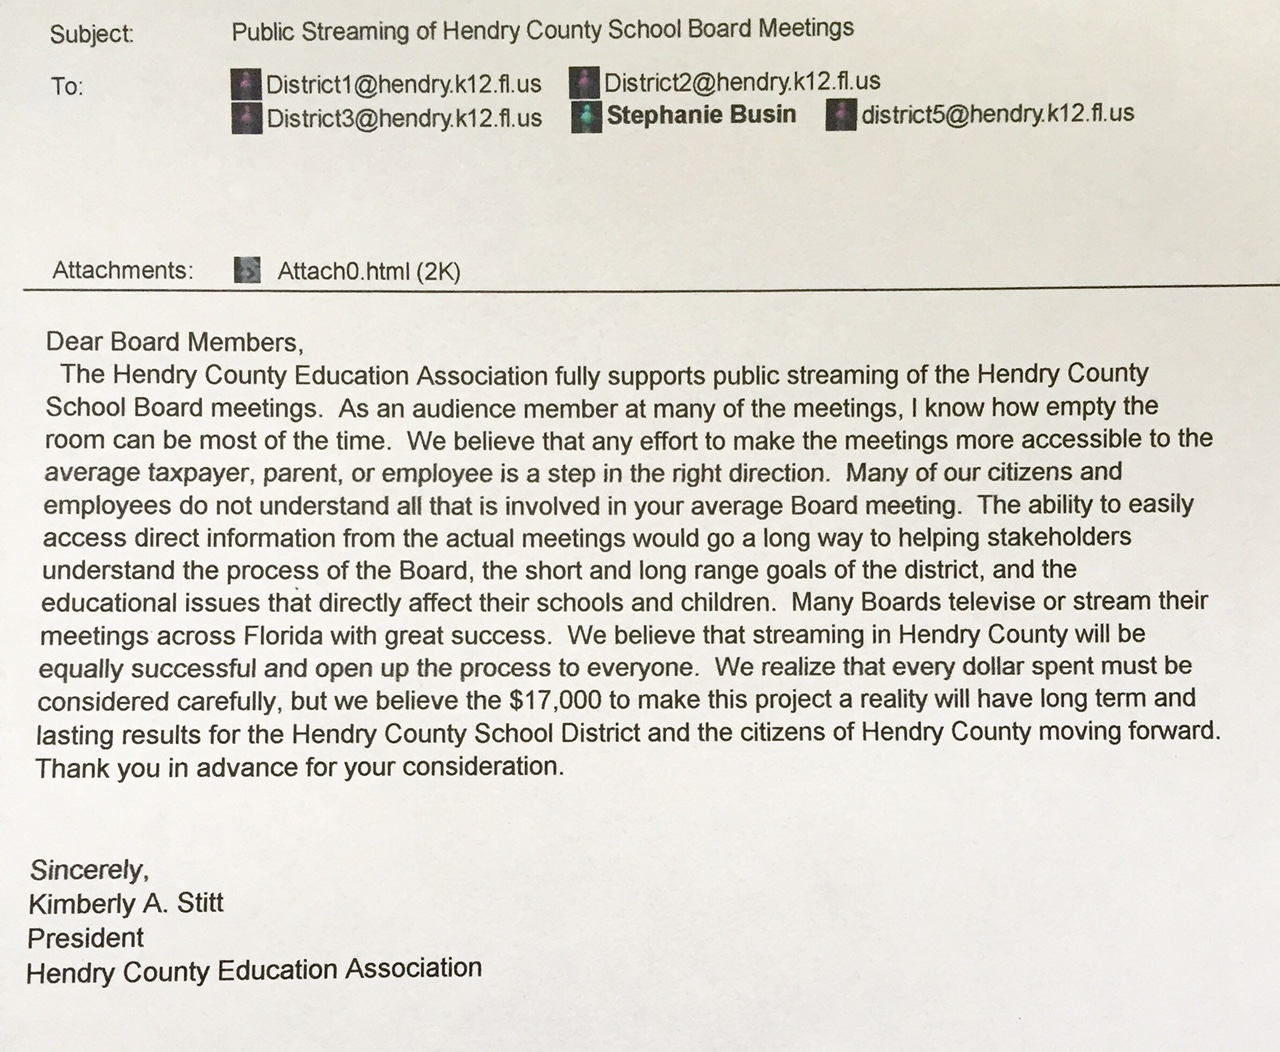 HCEA Support for Streaming Email